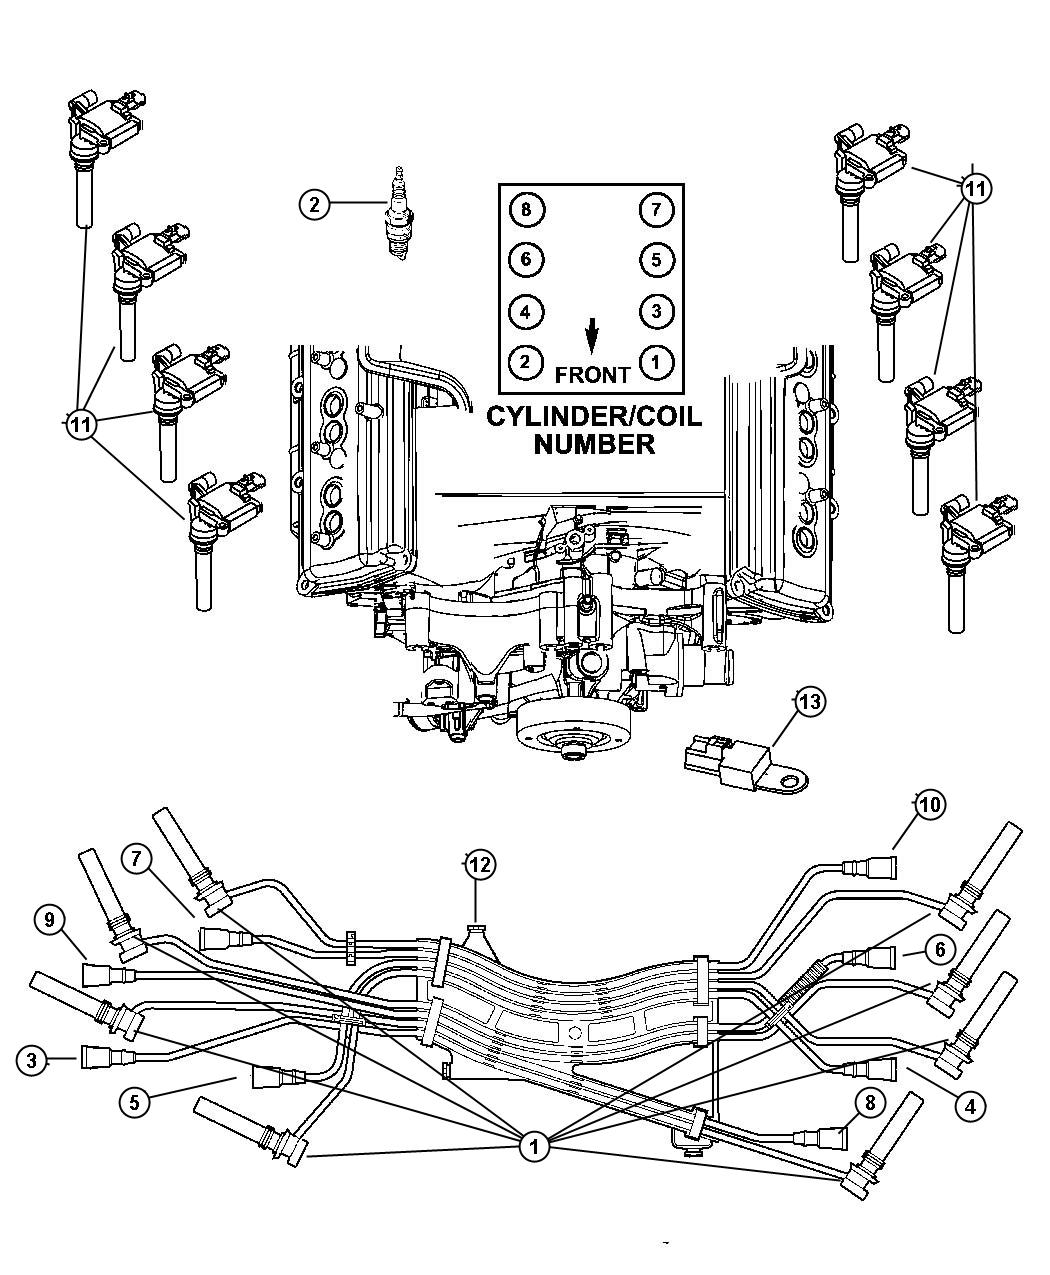 Dodge Ram 5 7 Hemi Engine Diagram